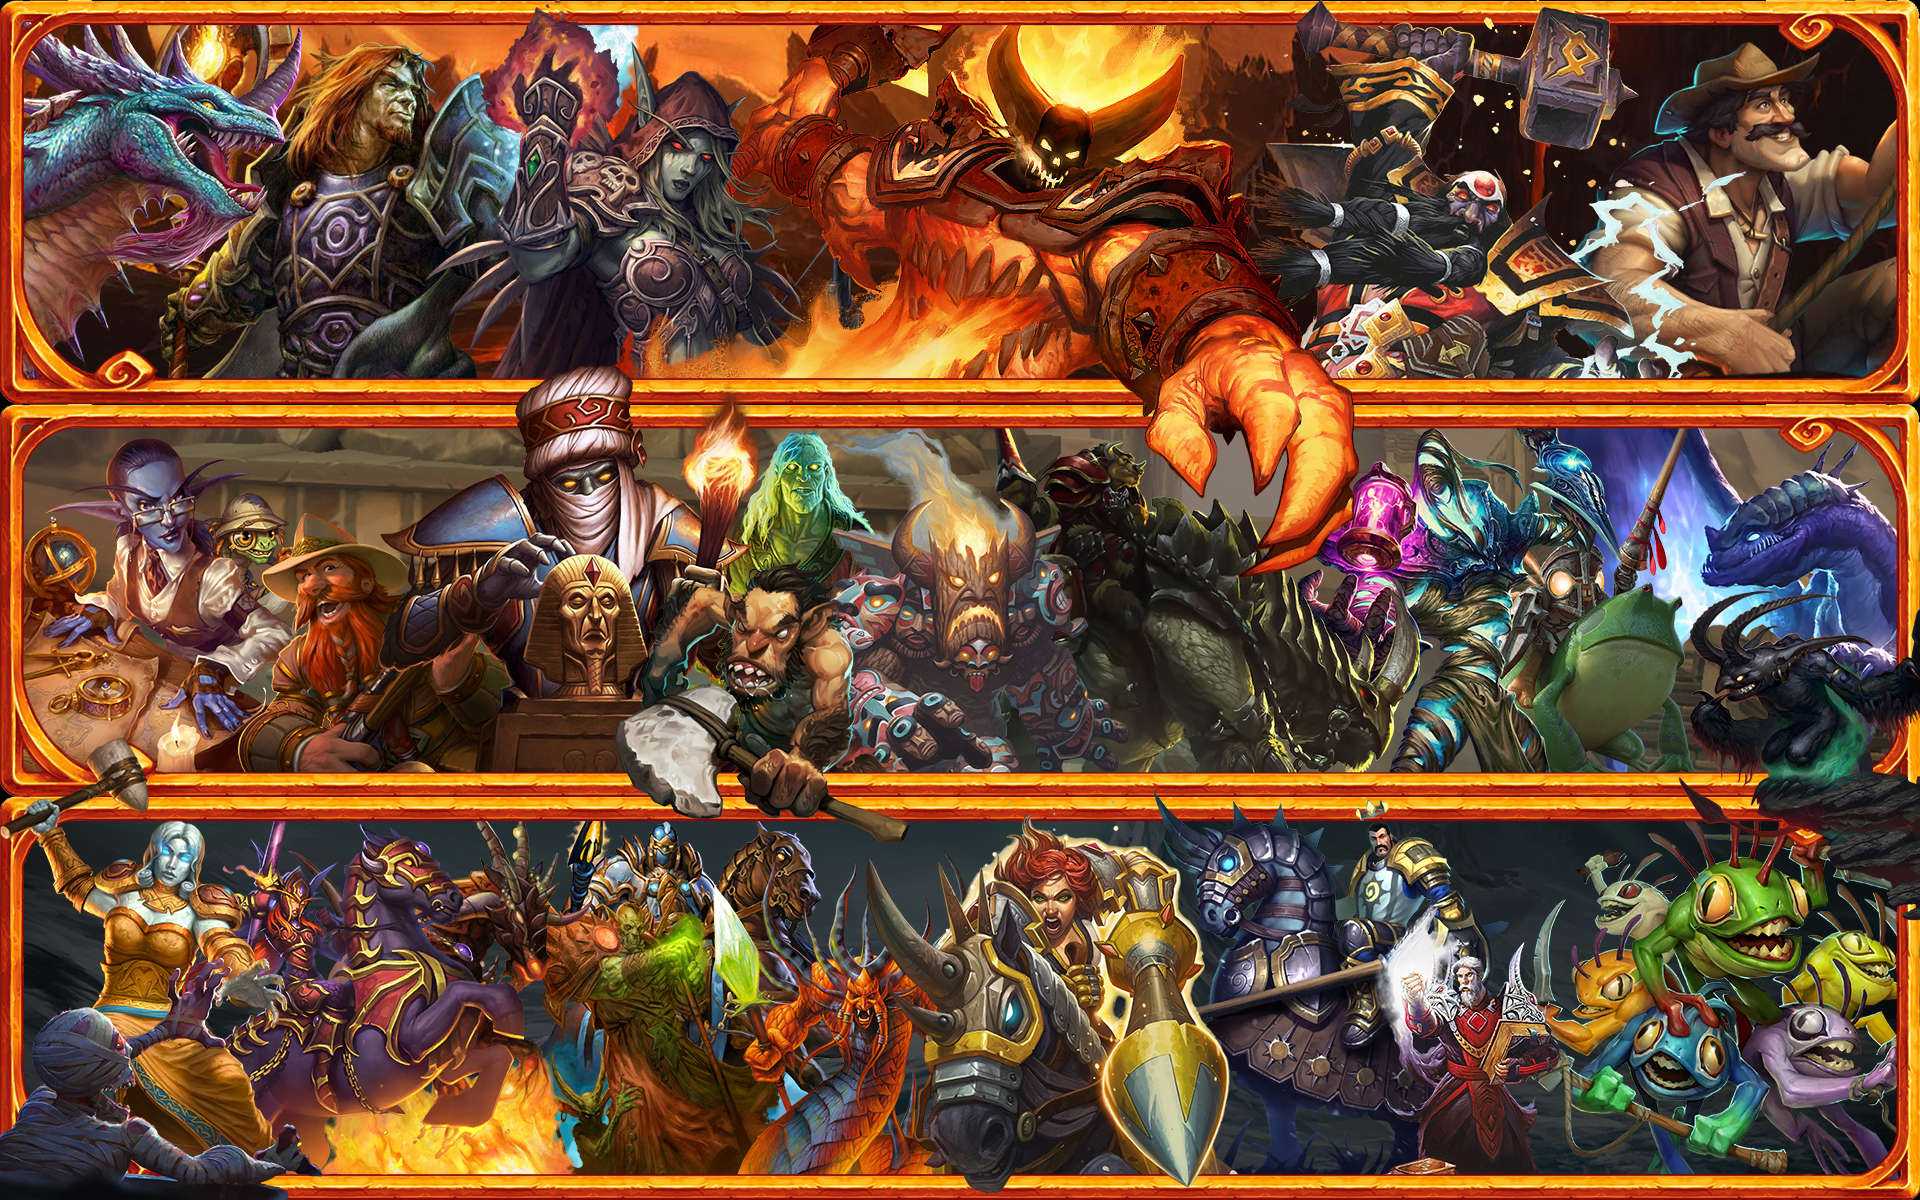 Hearthstone Wallpaper - End of standard mode